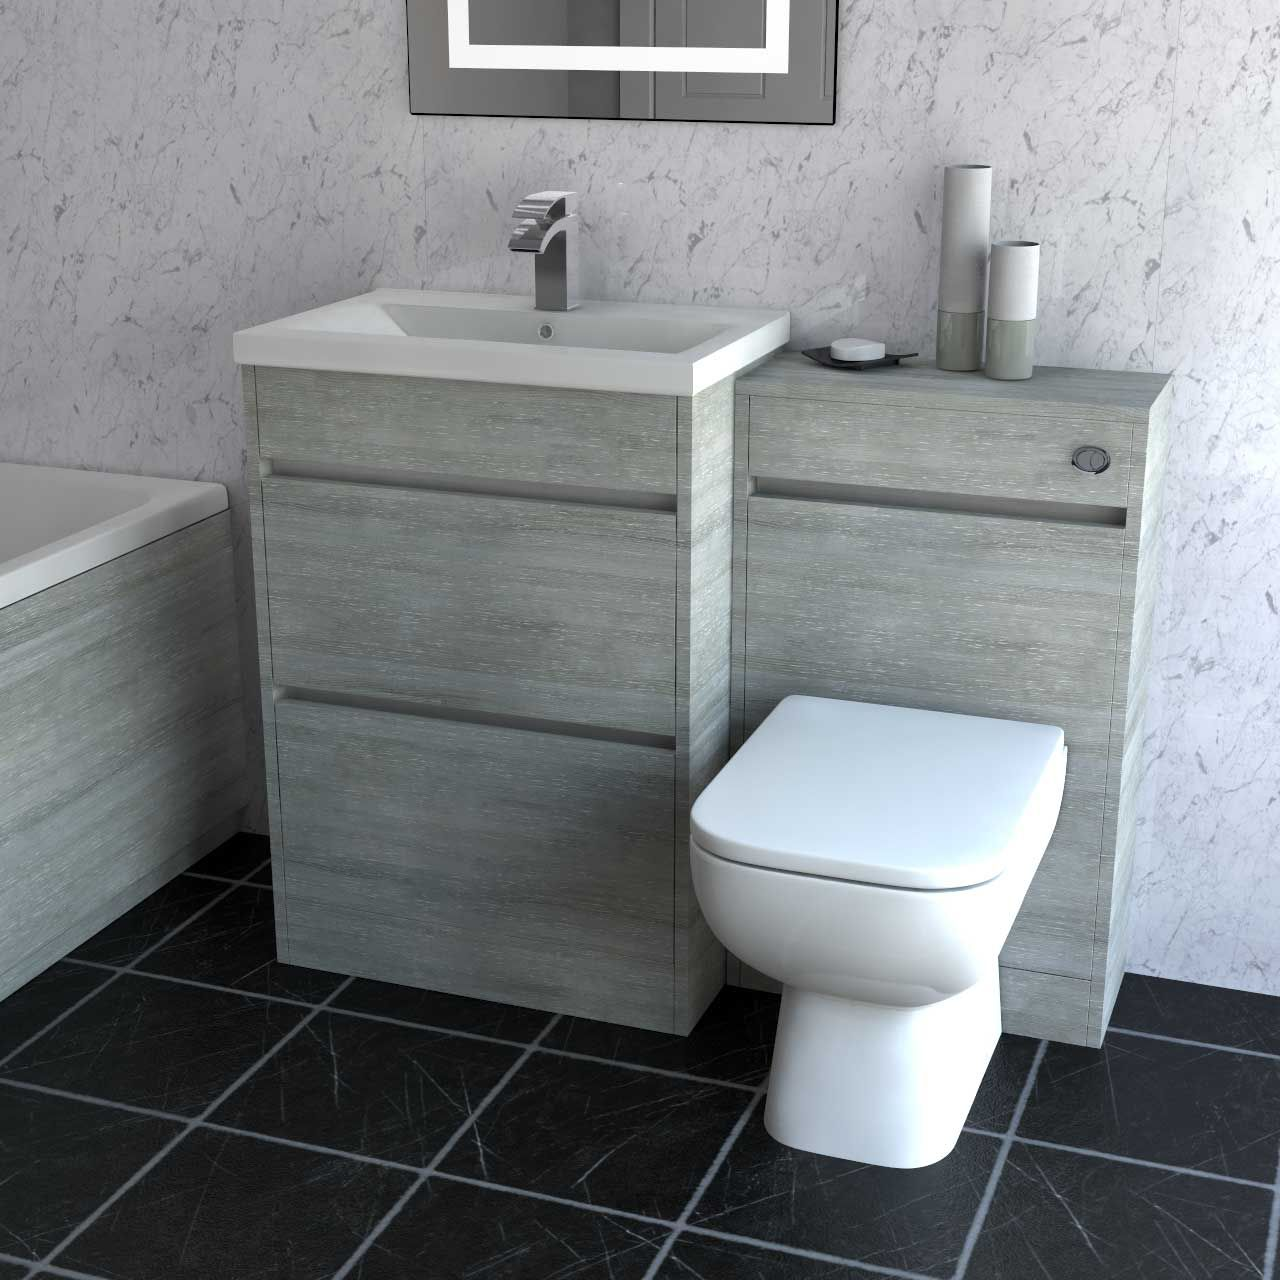 City Molina Ash 1100mm 2 Drawer Vanity Unit Toilet Suite Basin Vanity Unit Vanity Units Toilet Suites